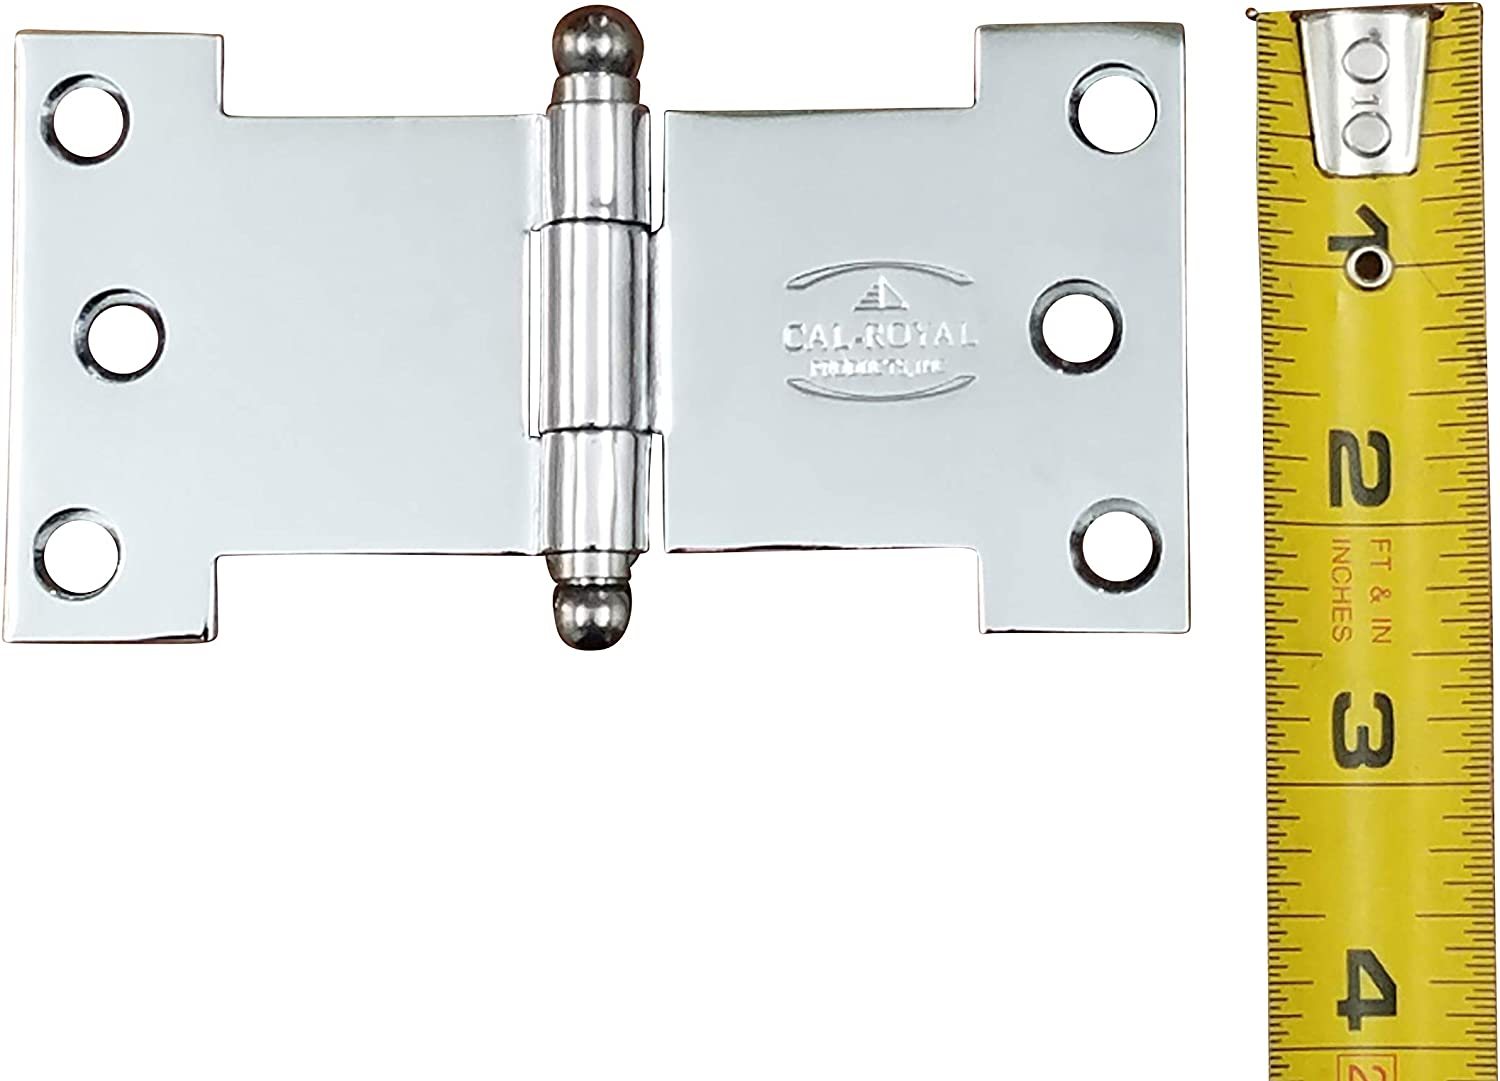 4 5//8 Inch x 2.5 Inch 2 Pack or Windows Shutters Polished Brass Parliament Hinges for Doors